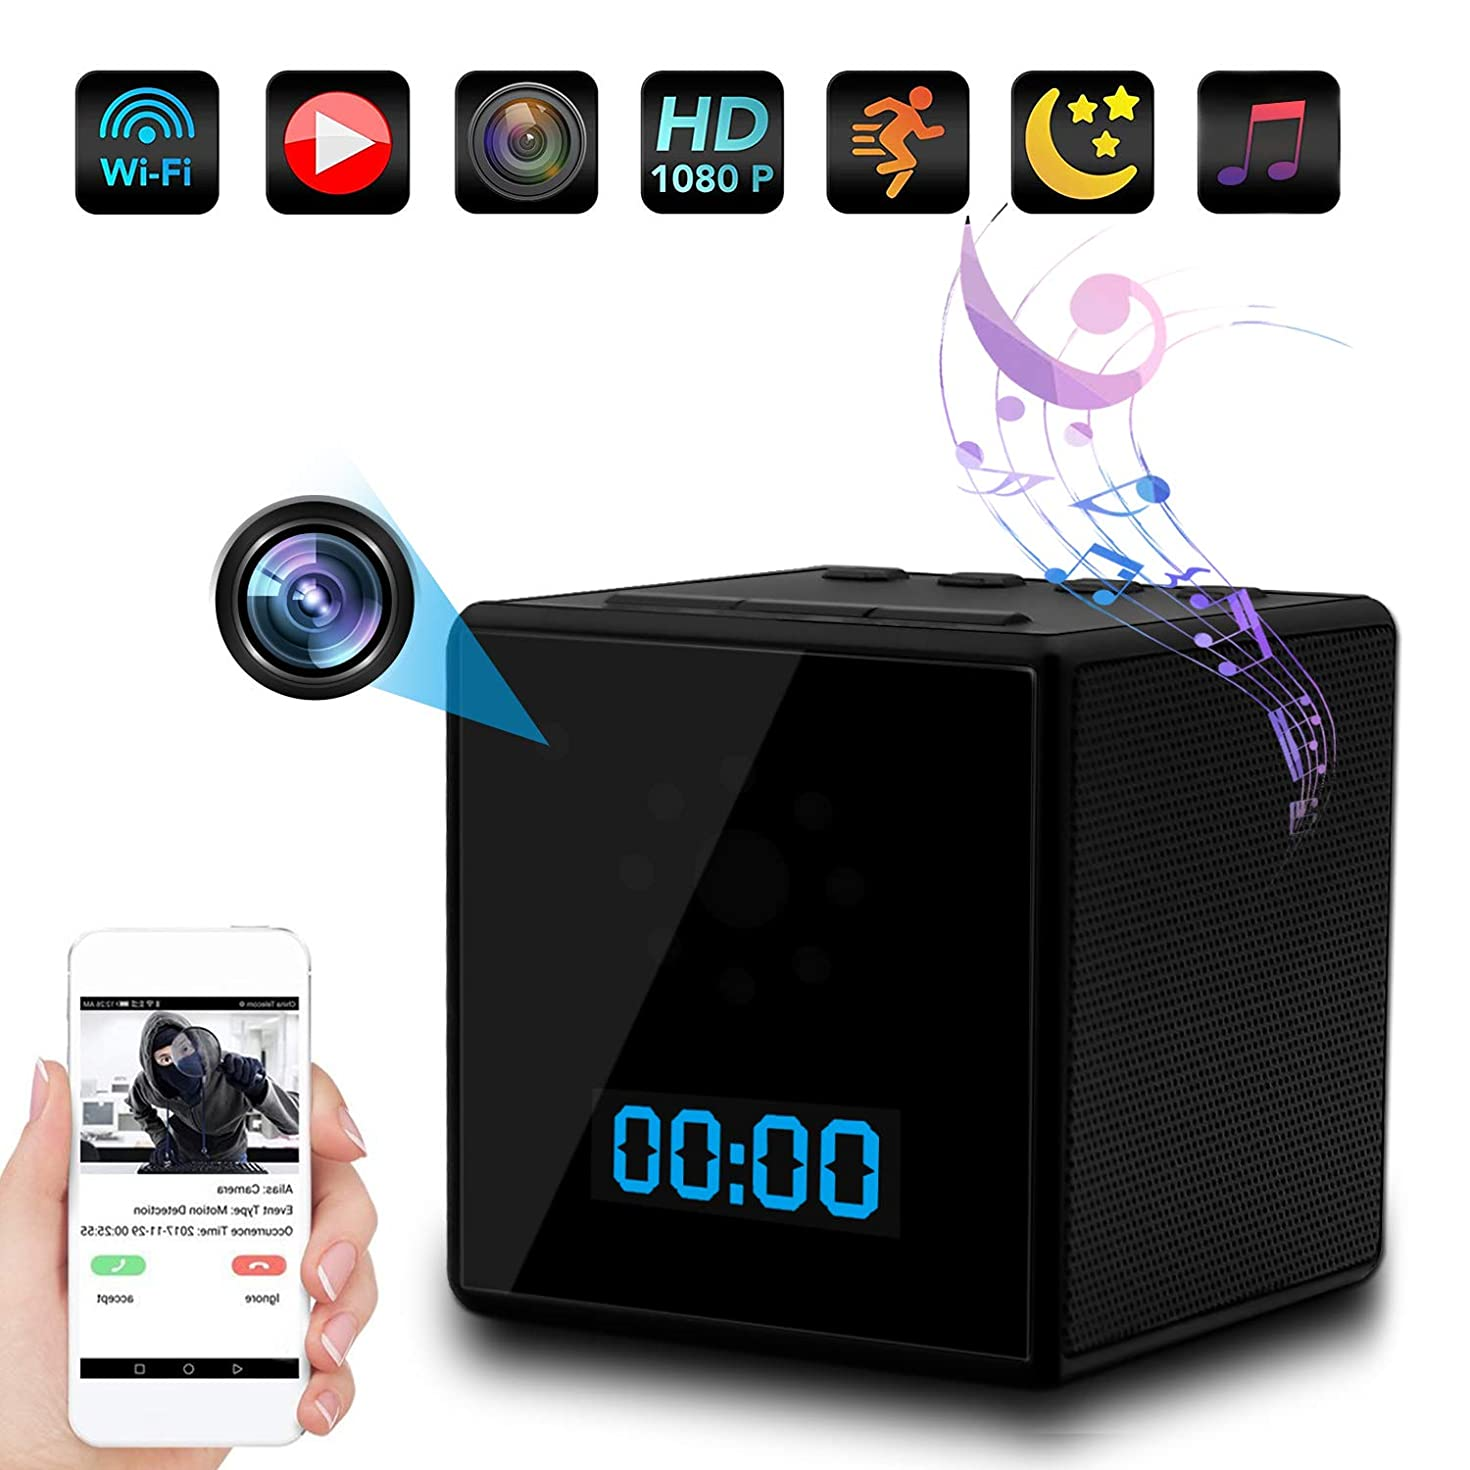 TTCDBF Hide Bluetooth Speaker camera/1080P Full hd Hidden CAM/Night Vision Motion Detection/Home Security Surveillance Video Recorder/Use The APP to View it remotely